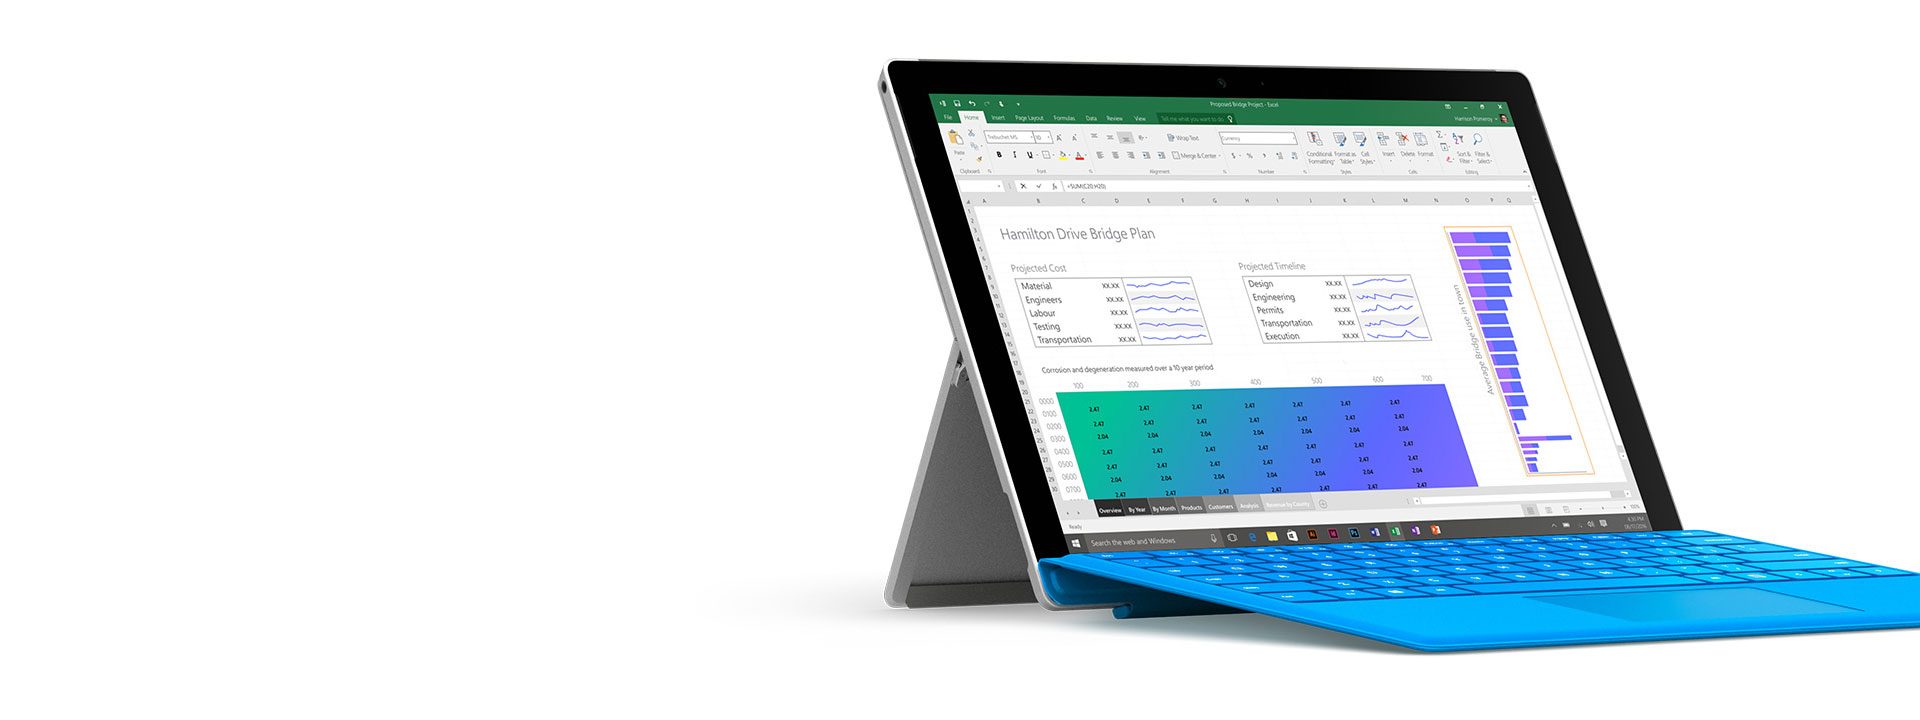 Surface Pro 4 with Office on screen.